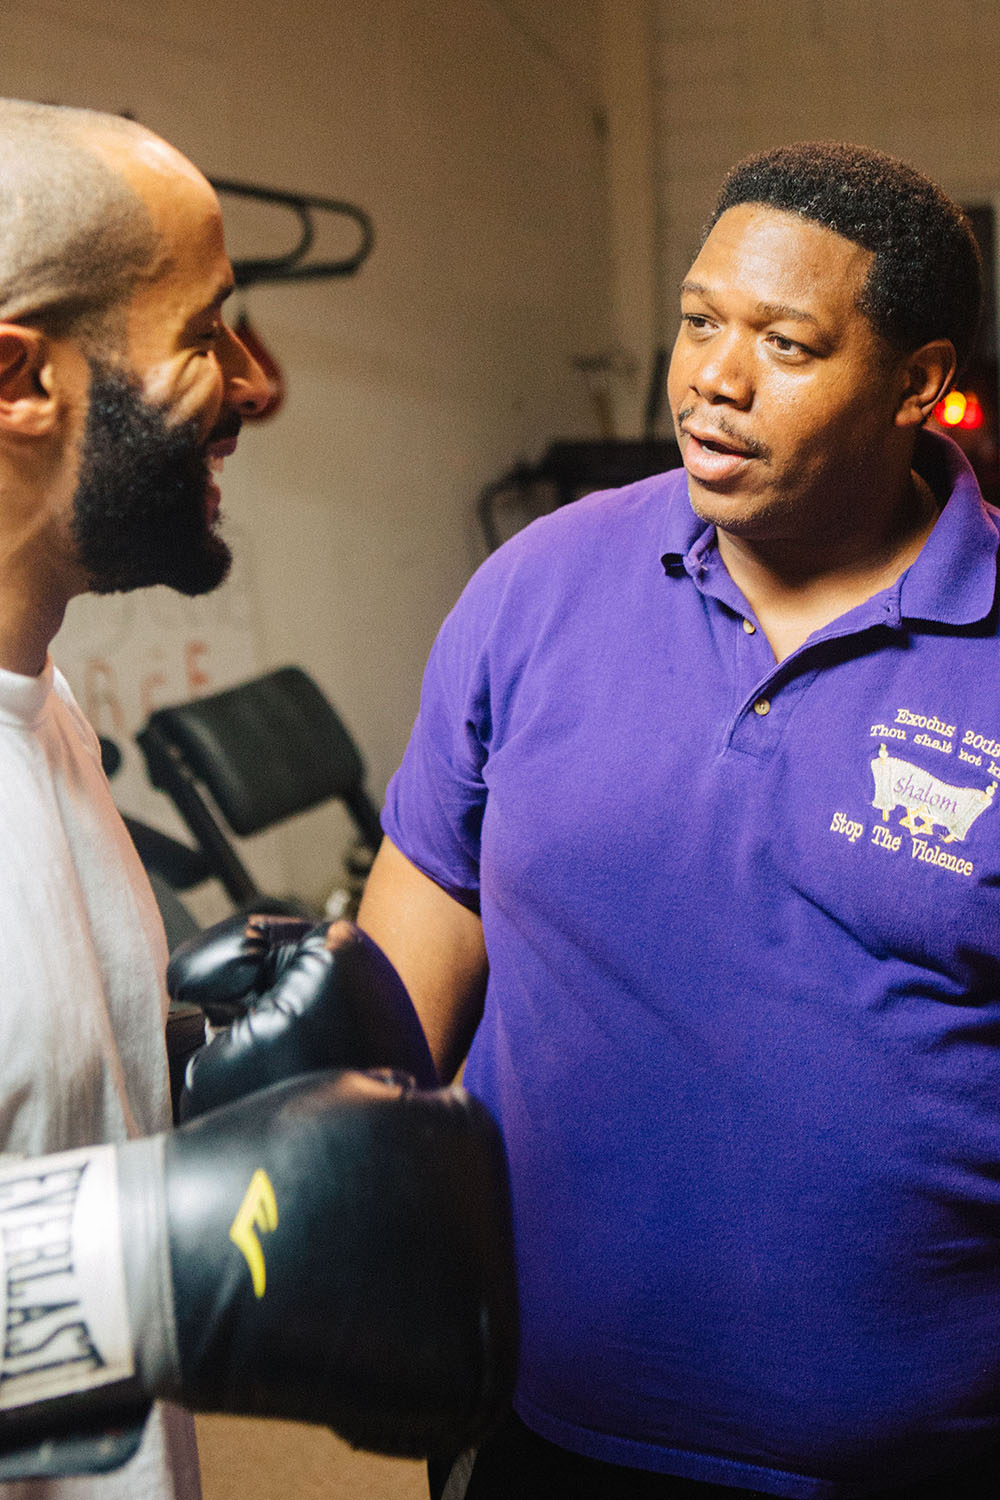 David Johnson, 28, takes a moment to laugh while Bishop Arnold Harris jokes with him. David enjoys his new hobby of boxing at The Gym of Hard Knocks. (Staff photo by Bruce dePyssler)